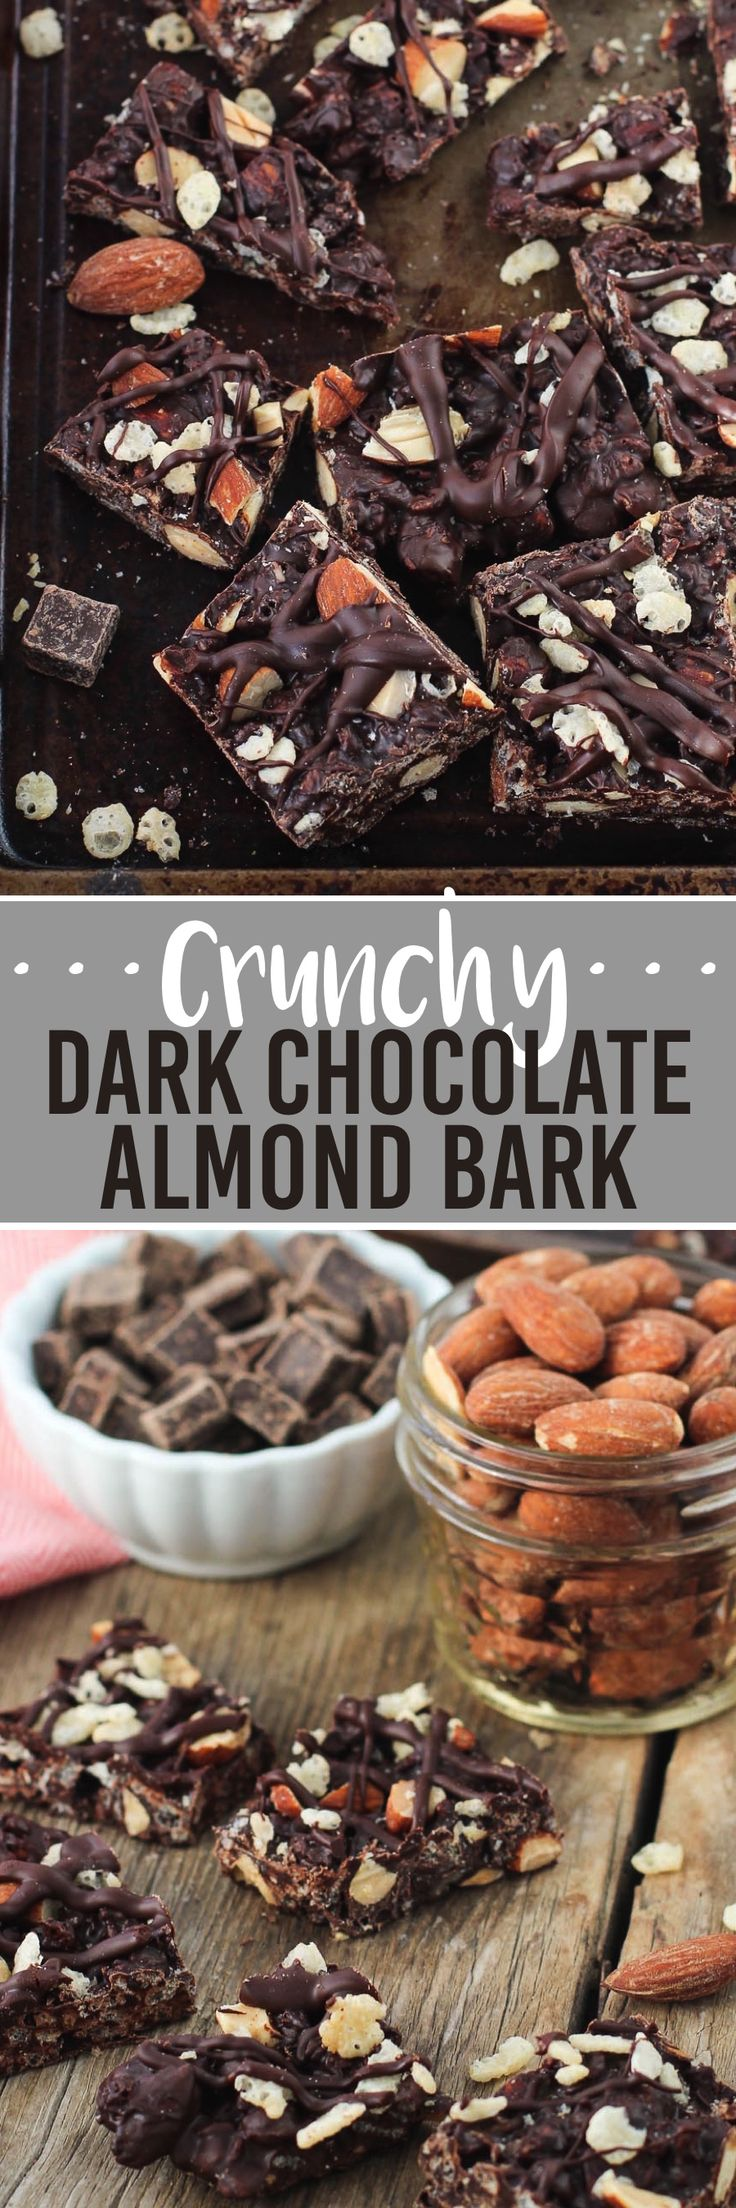 This crunchy dark chocolate almond bark is an easy three-ingredient and no-bake dessert recipe. Like a homemade dark chocolate Crunch bar loaded up with almonds!